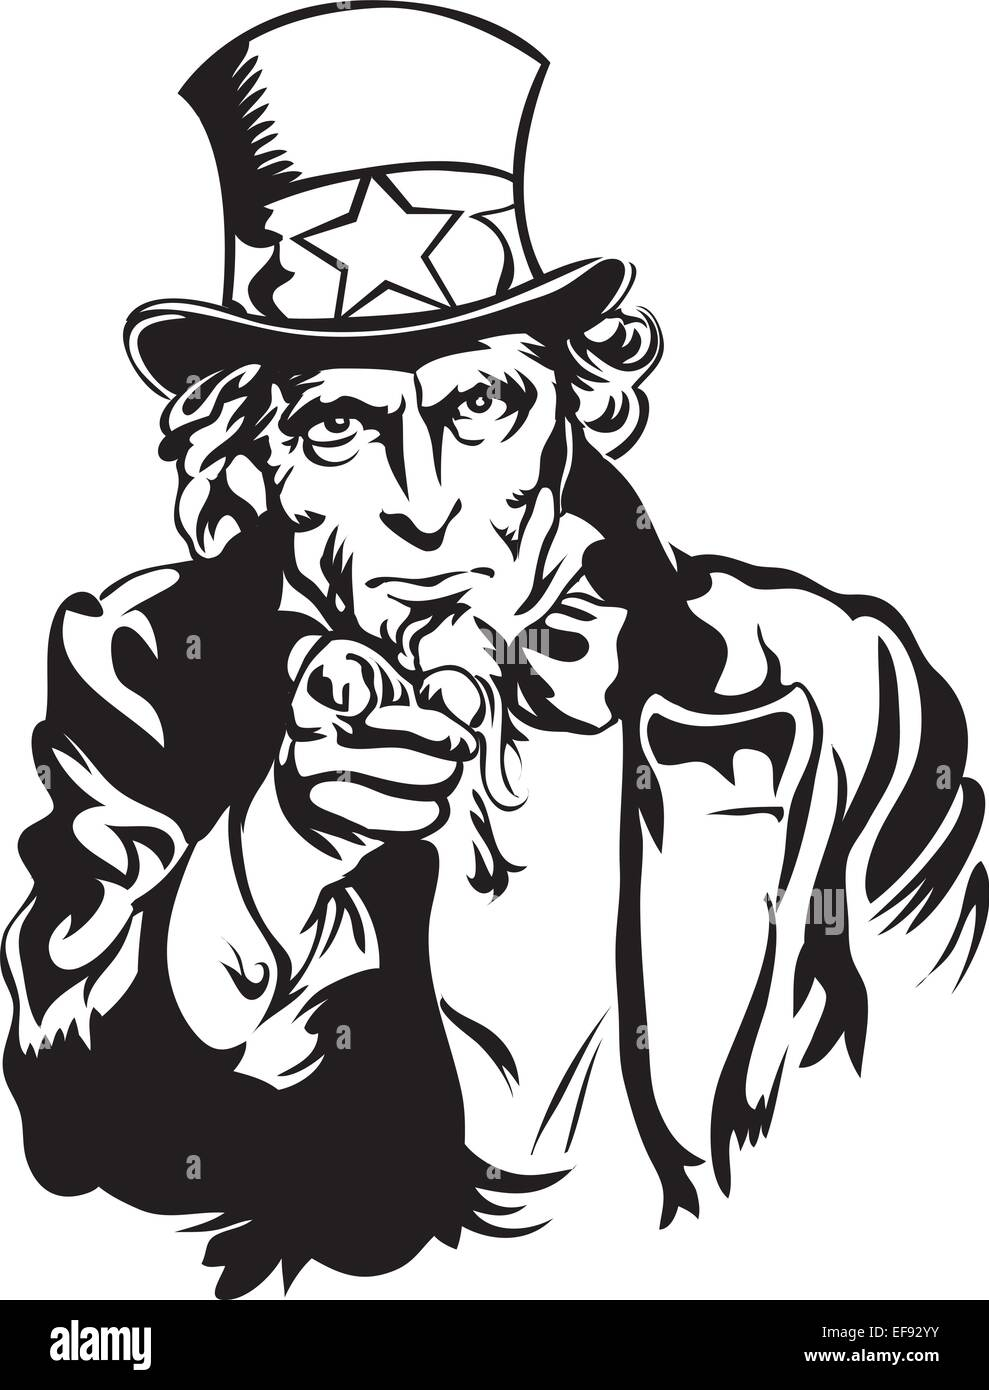 portrait of uncle sam stock vector art illustration vector image rh alamy com uncle sam vector free download uncle sam we want you vector